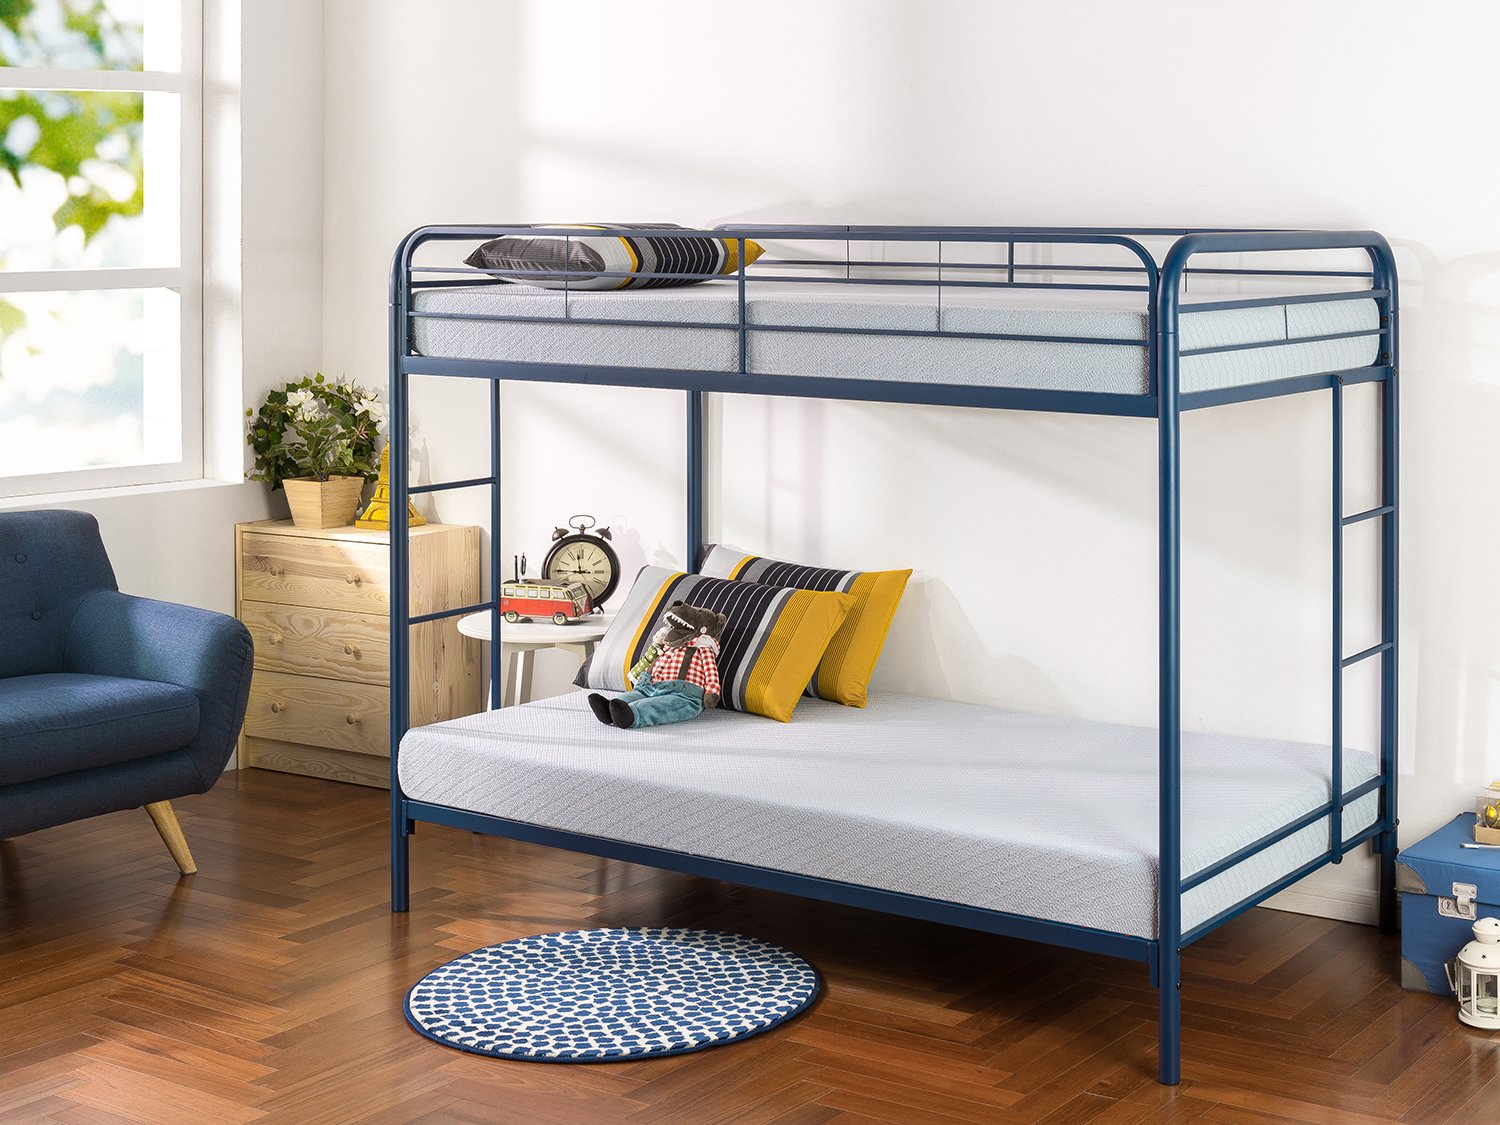 Cheap Navy Blue Bunk Bed Find Navy Blue Bunk Bed Deals On Line At